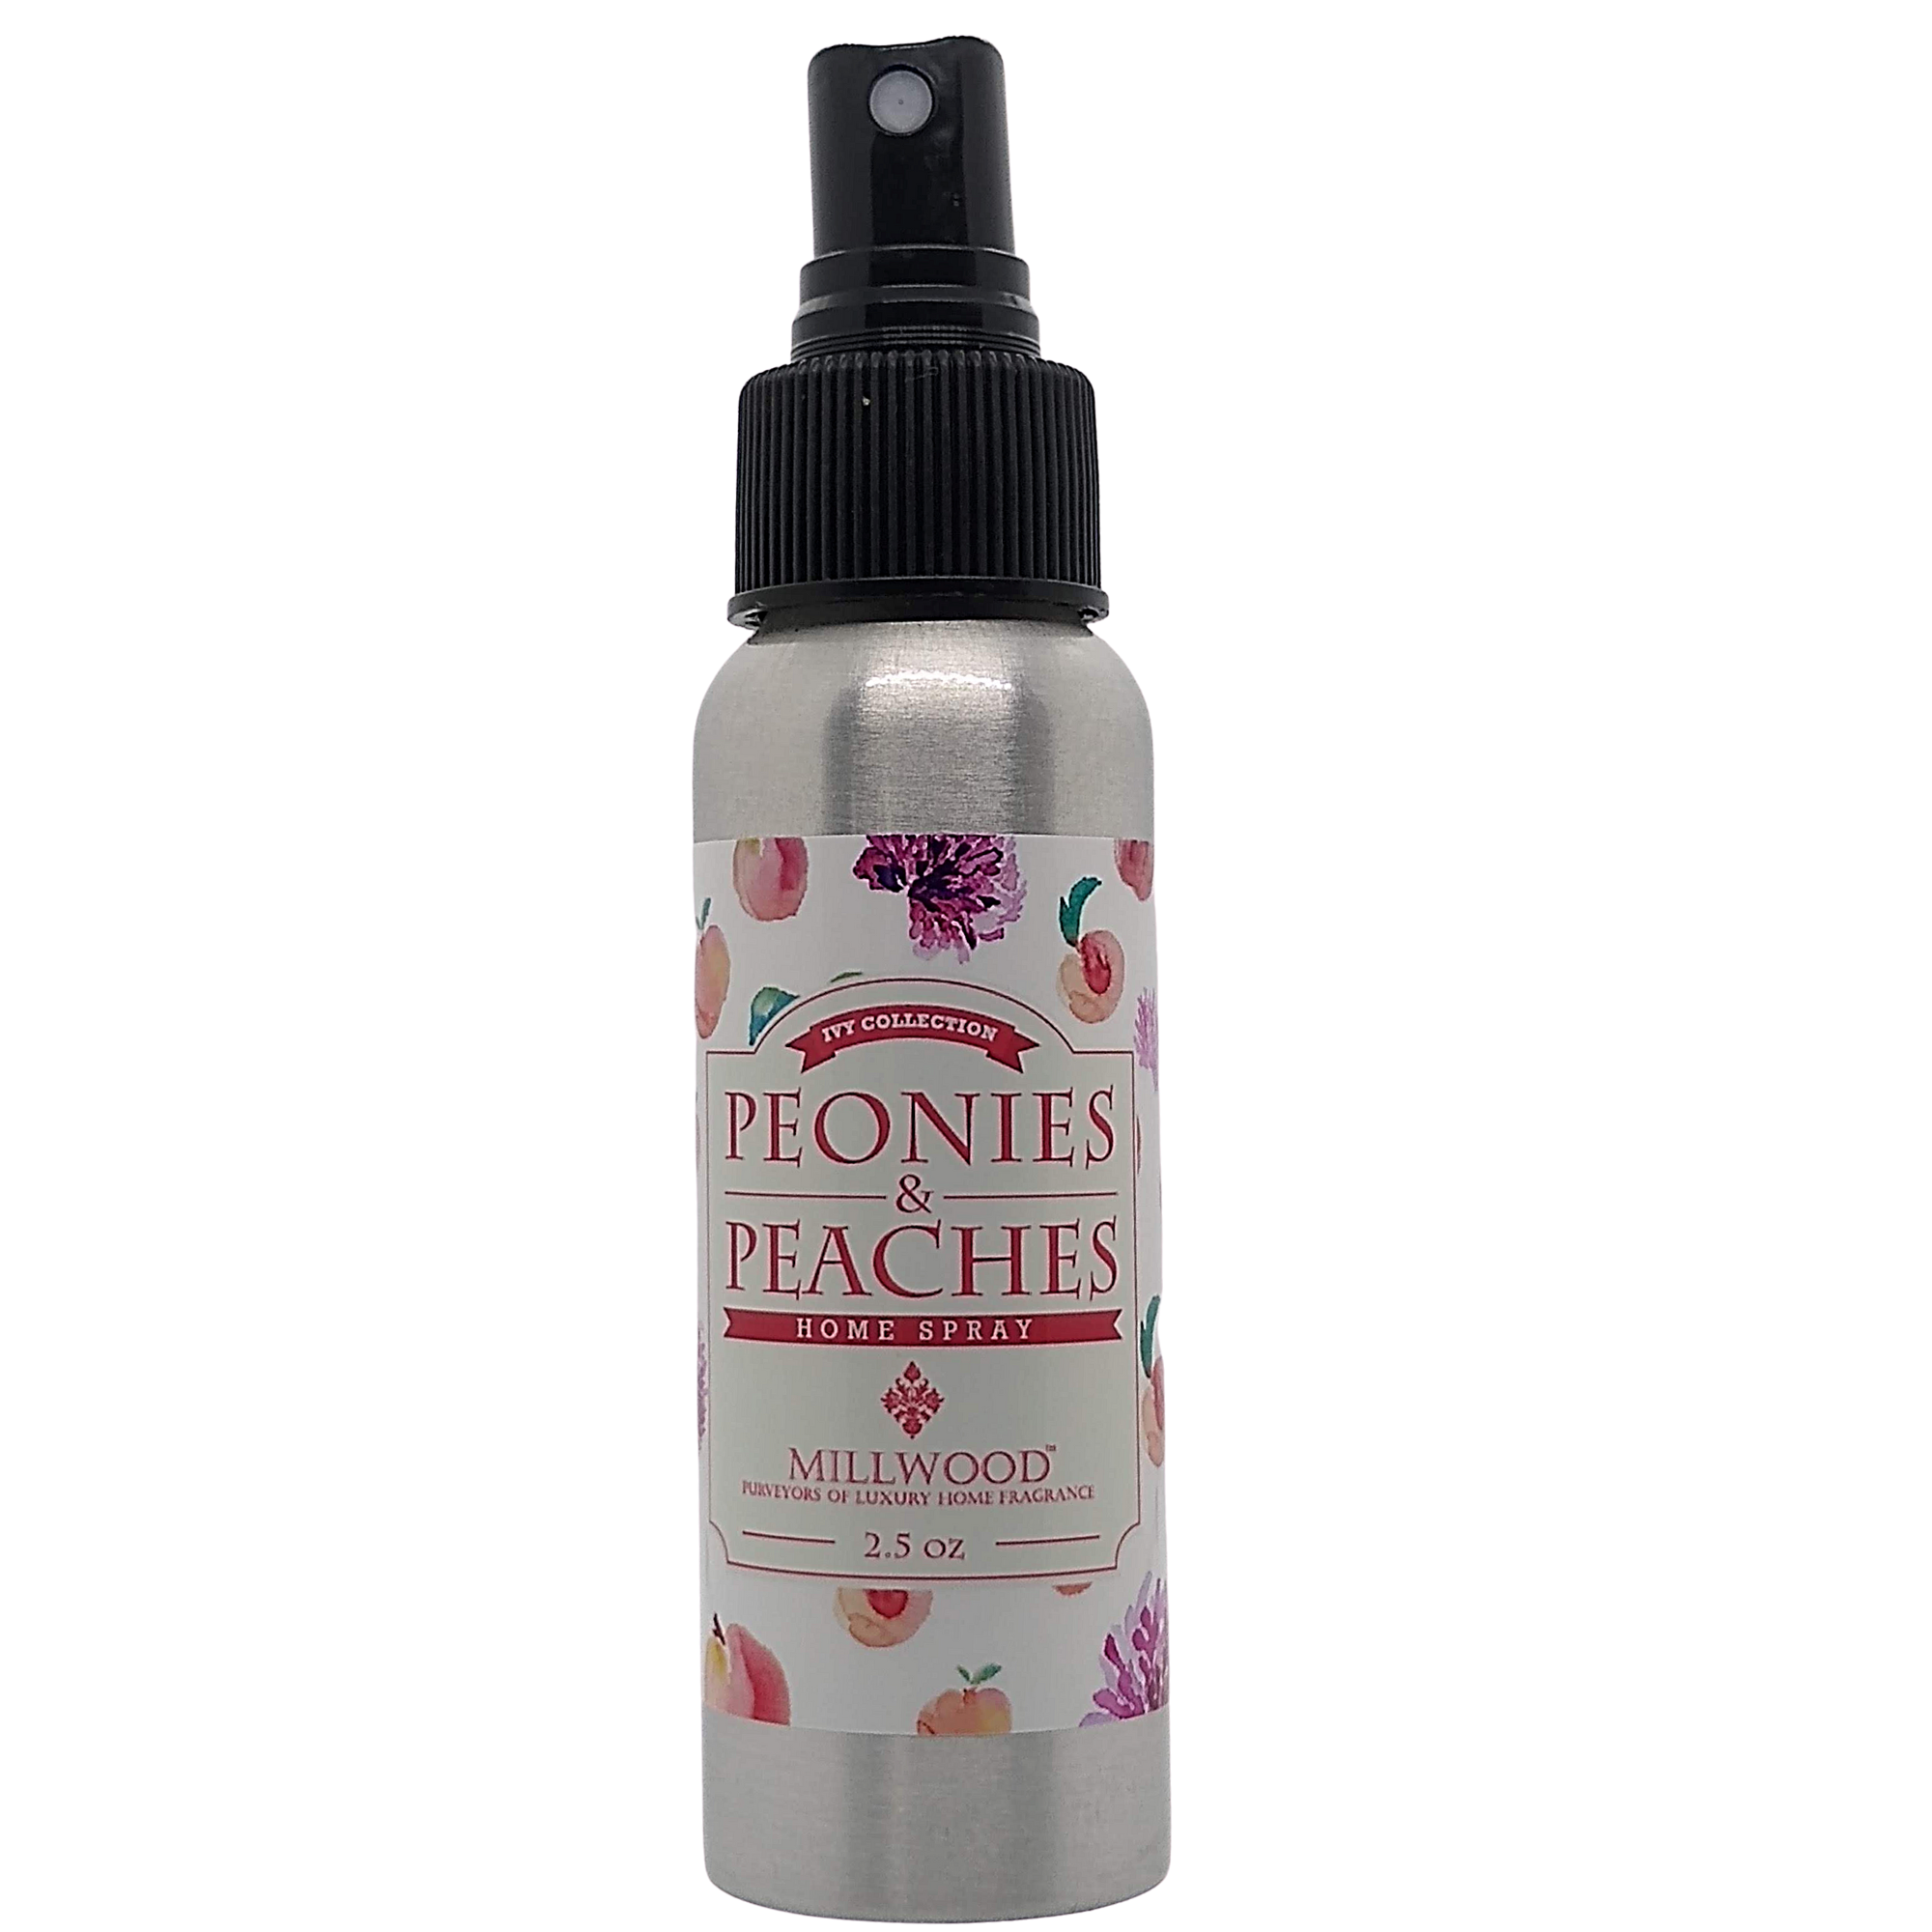 Peonies and Peaches Natural Room Spray by Millwood Candles